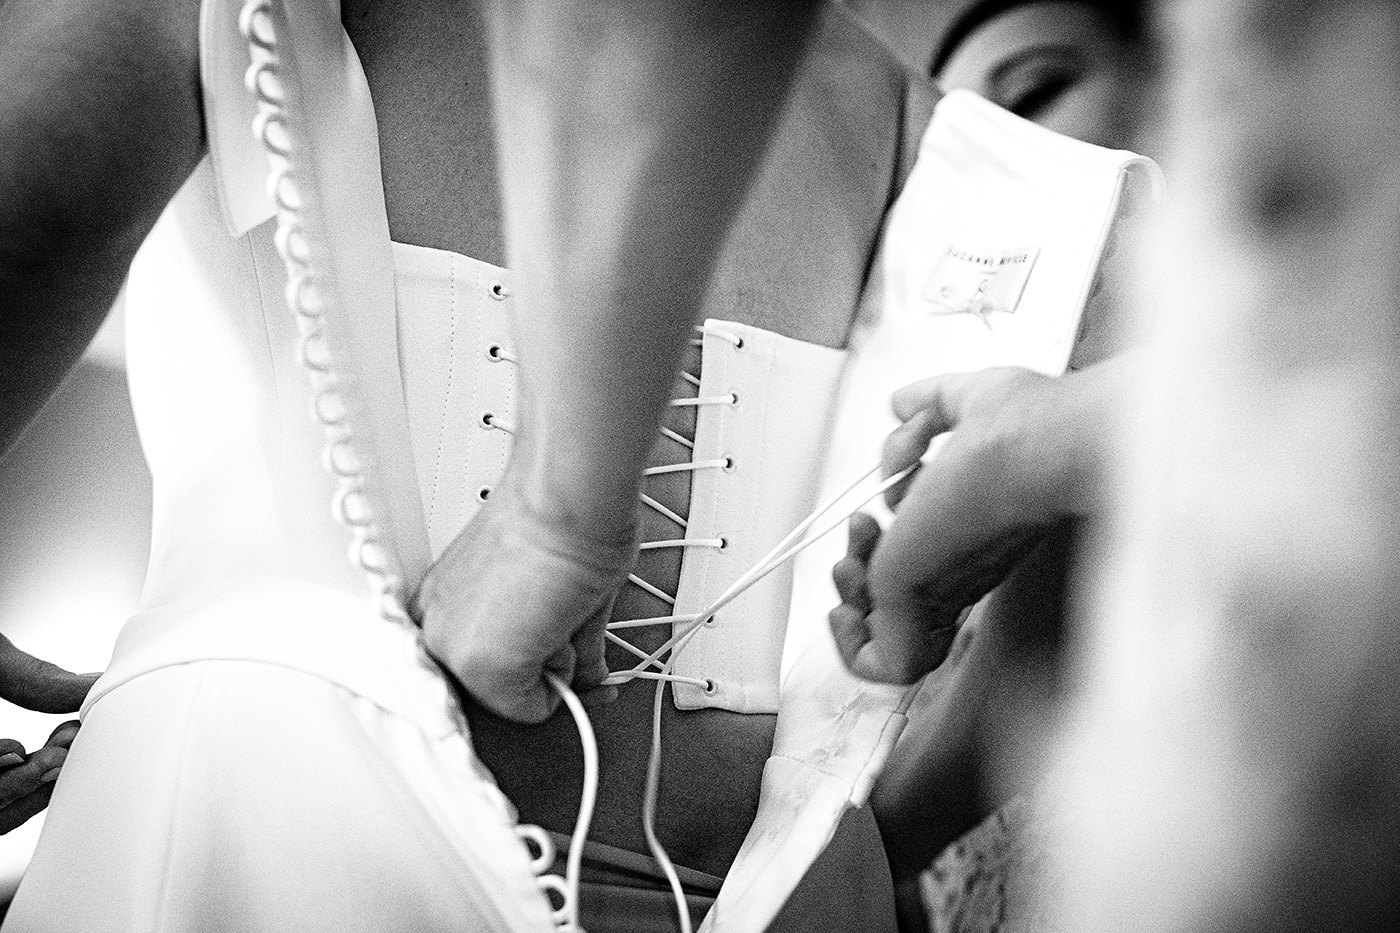 Tuscan Wedding Photo Shoots At Palagio Castle: the end of the getting ready